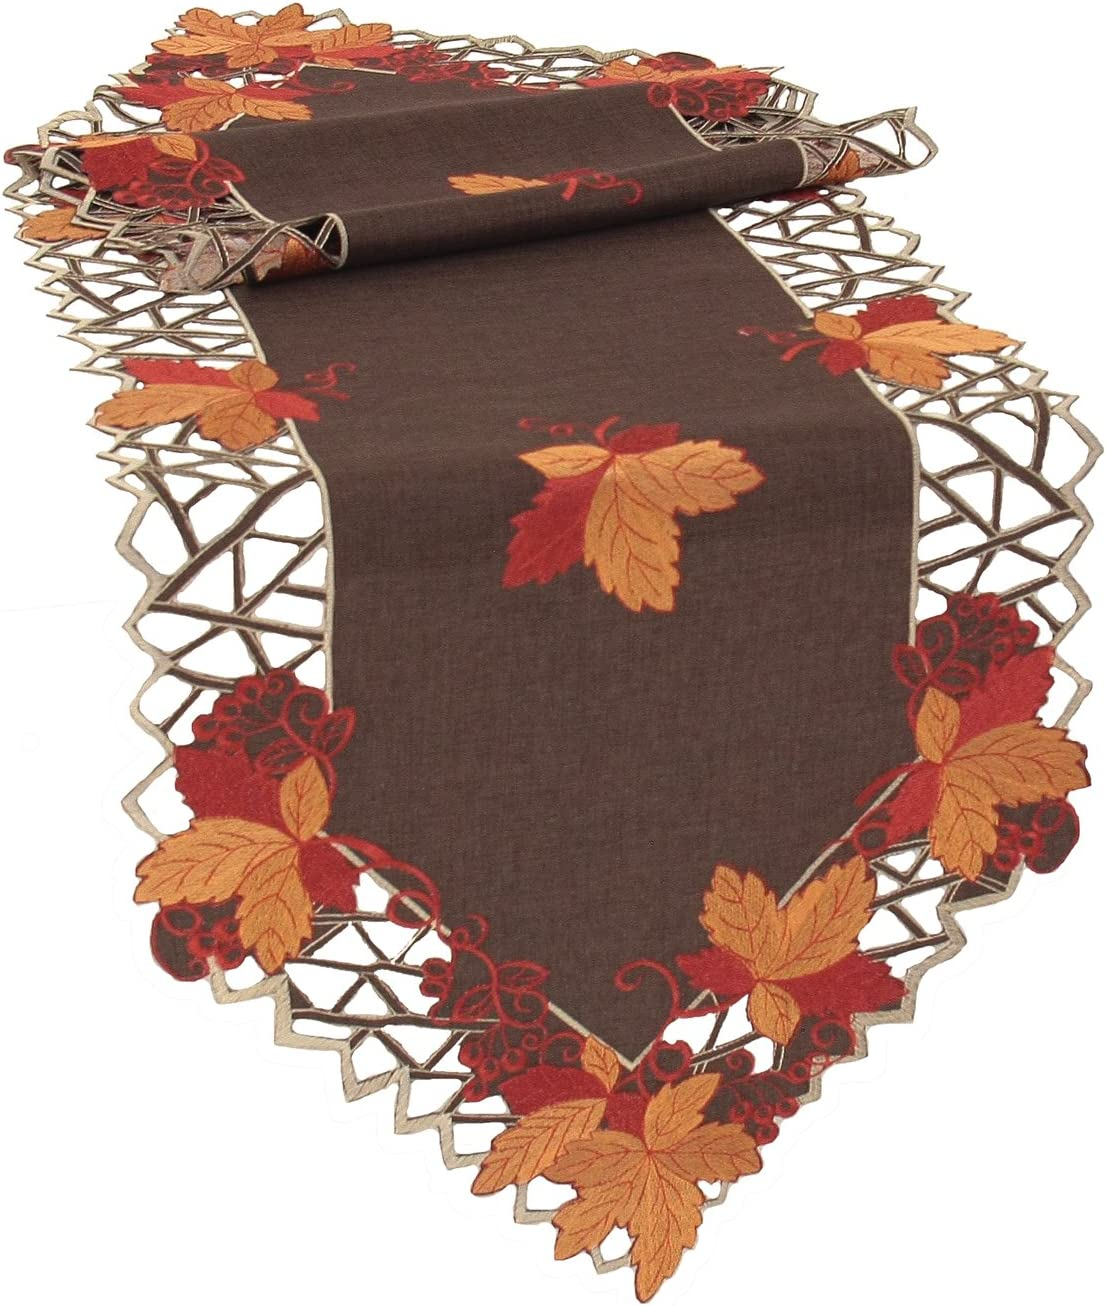 Xia Home Fashions Harvest Hues Embroidered Cutwork Fall Table Runner, 15 by 54-Inch